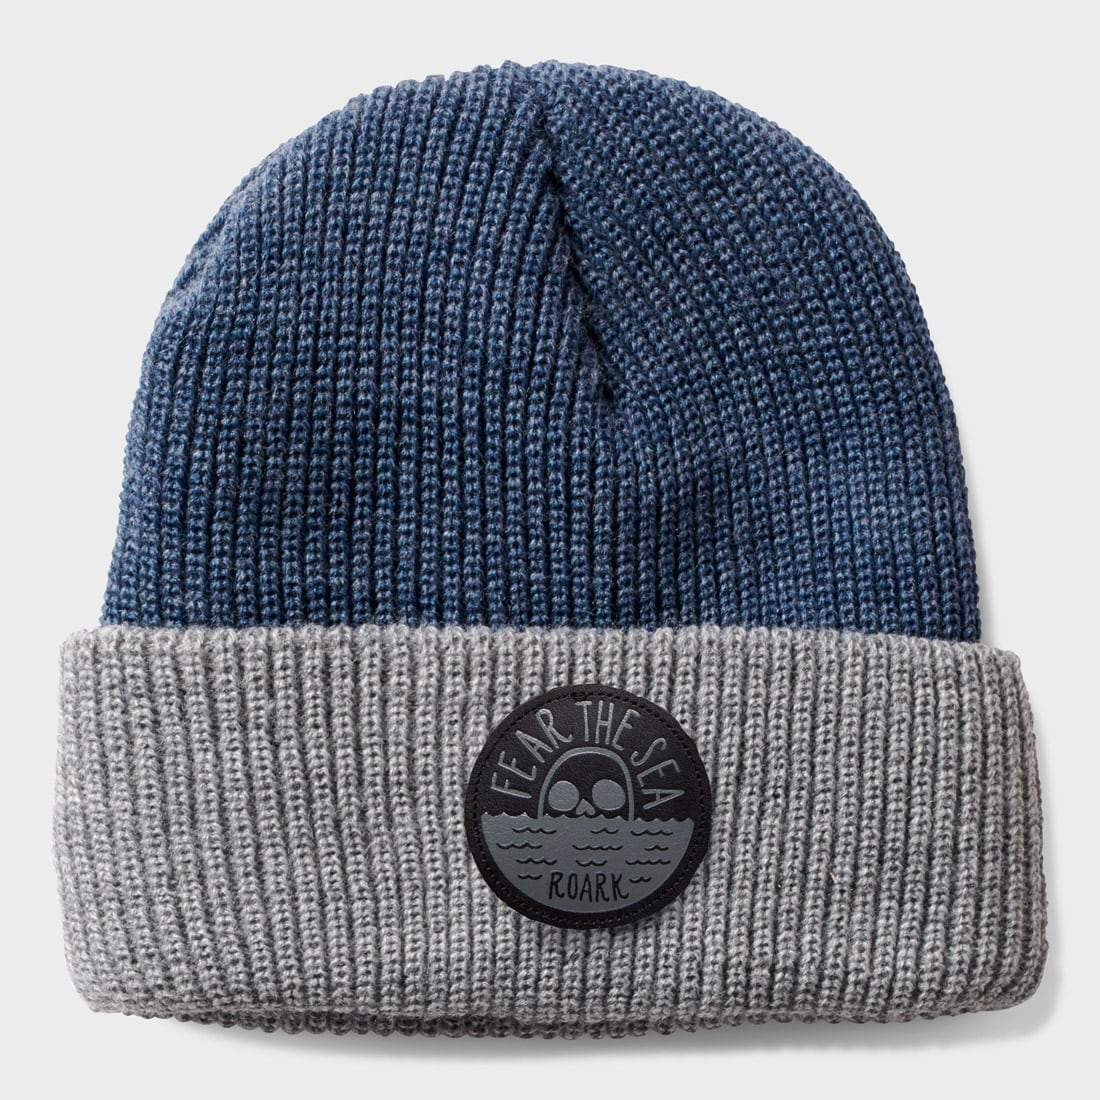 Roark Fear the Sea Beanie Charcoal